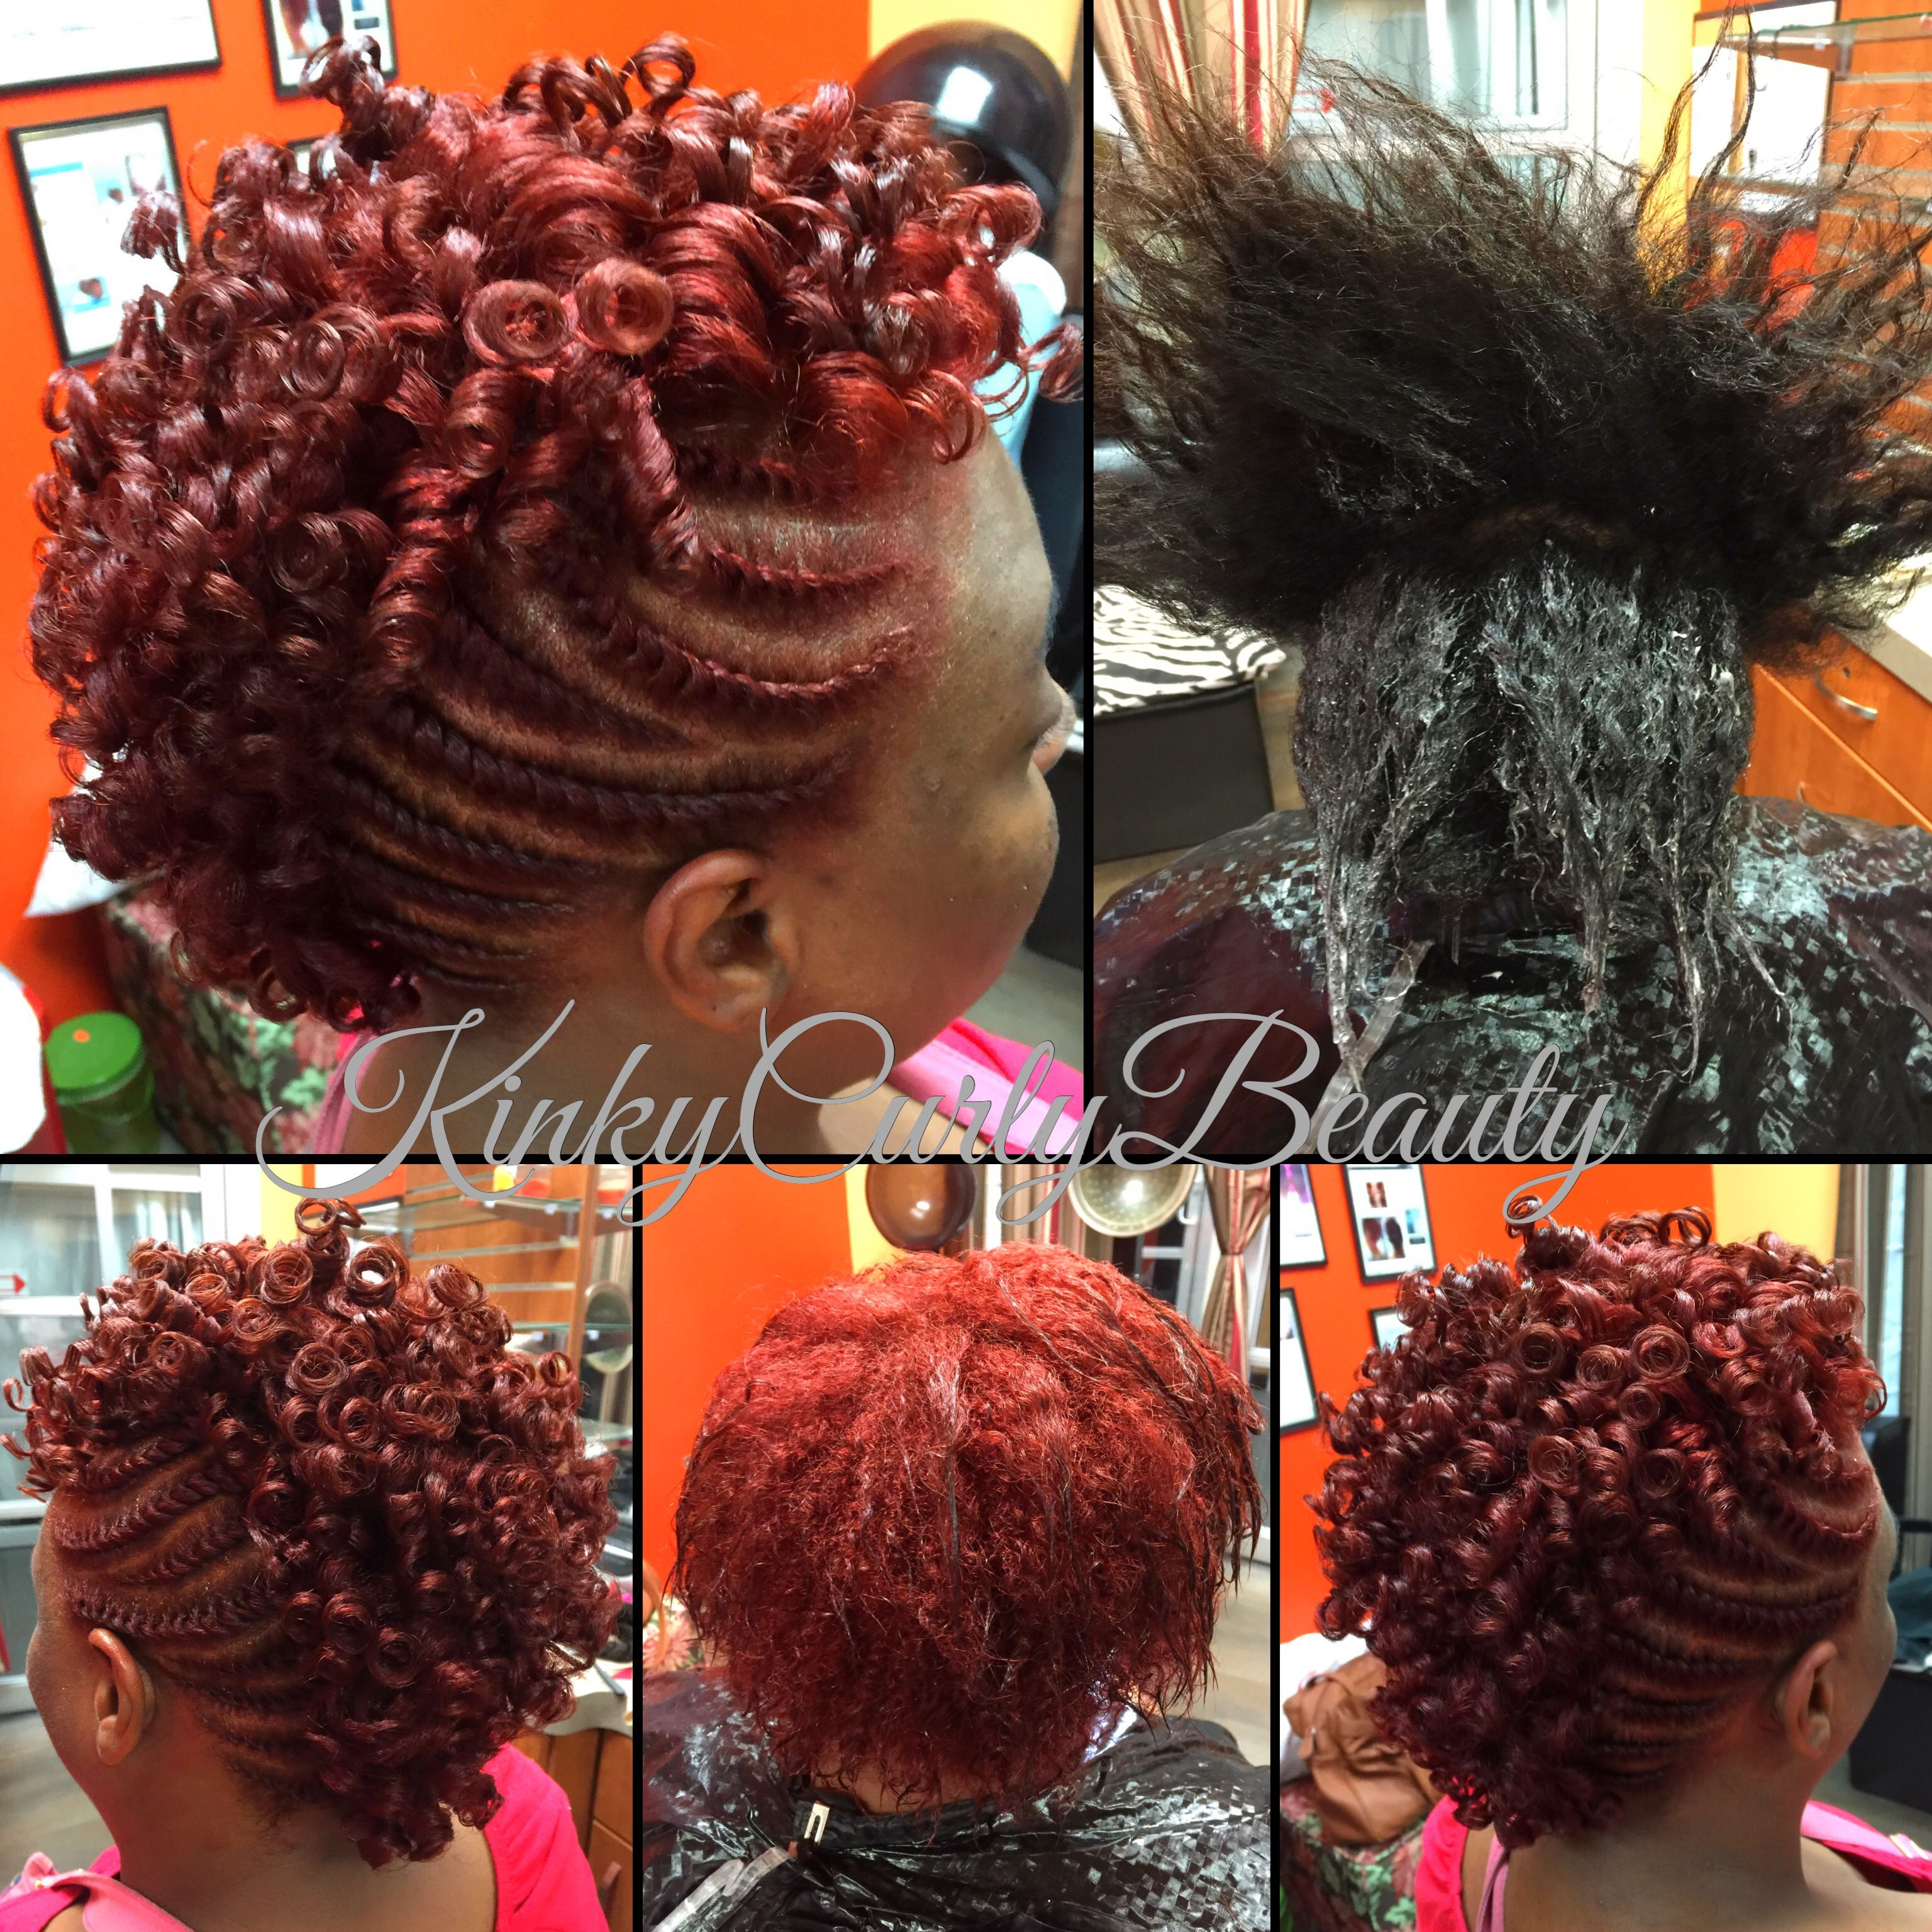 www new hair style for boys com new color with a flat twist rodded mohawk hair styles 7600 | d8e0afa4a077d7600ce3b88101744ed7